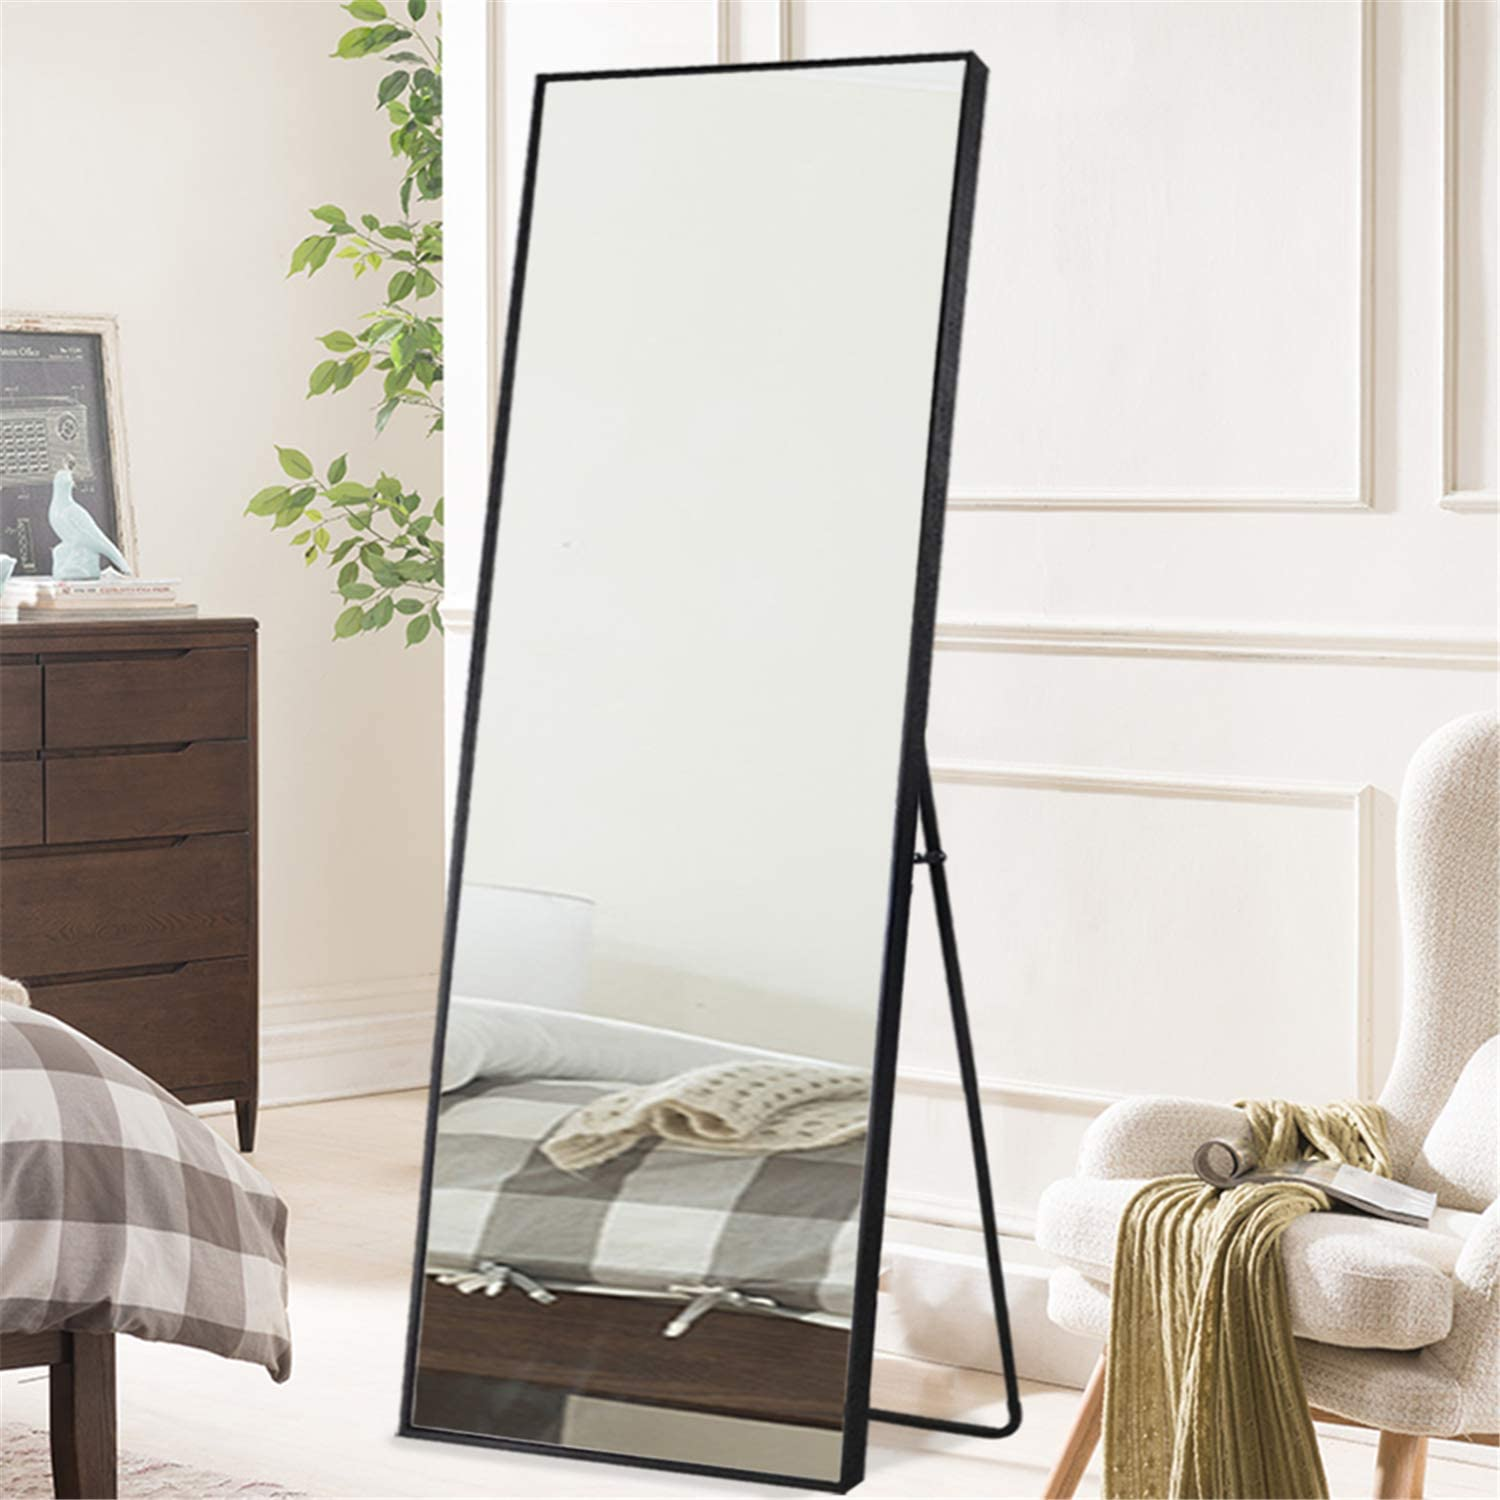 Amazon Com Zhowi Floor Mirror Full Length Large Full Body Size Stand Up Standing Long Mirrors Bedroom Bathroom Decor Ps Frame Black 65x22in Furniture Decor